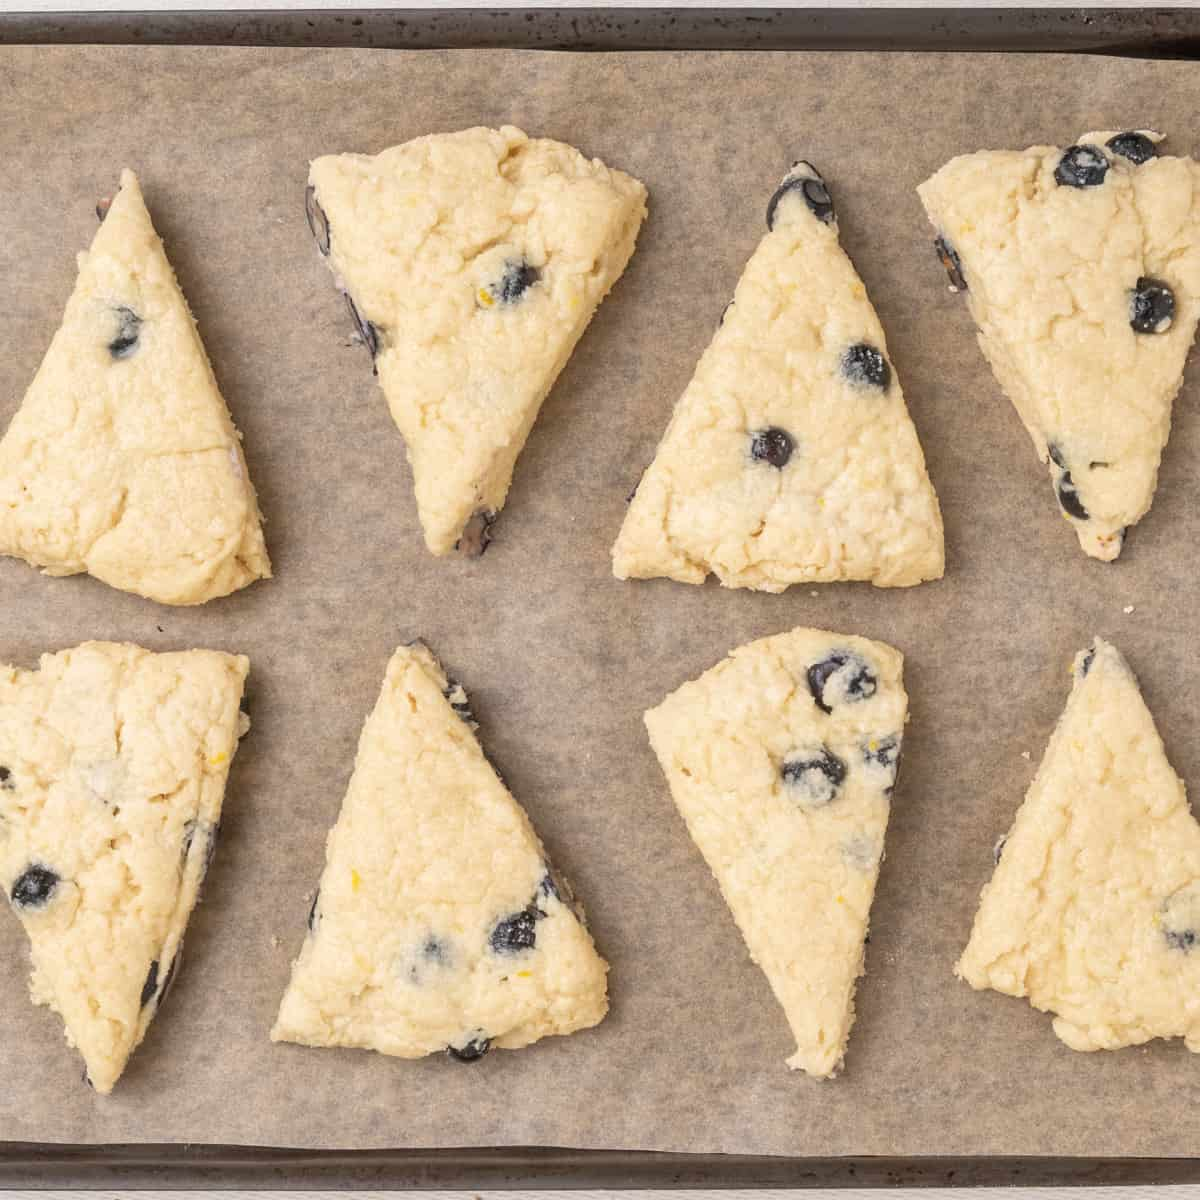 Wedges of blueberry scone dough arranged on a line baking sheet.